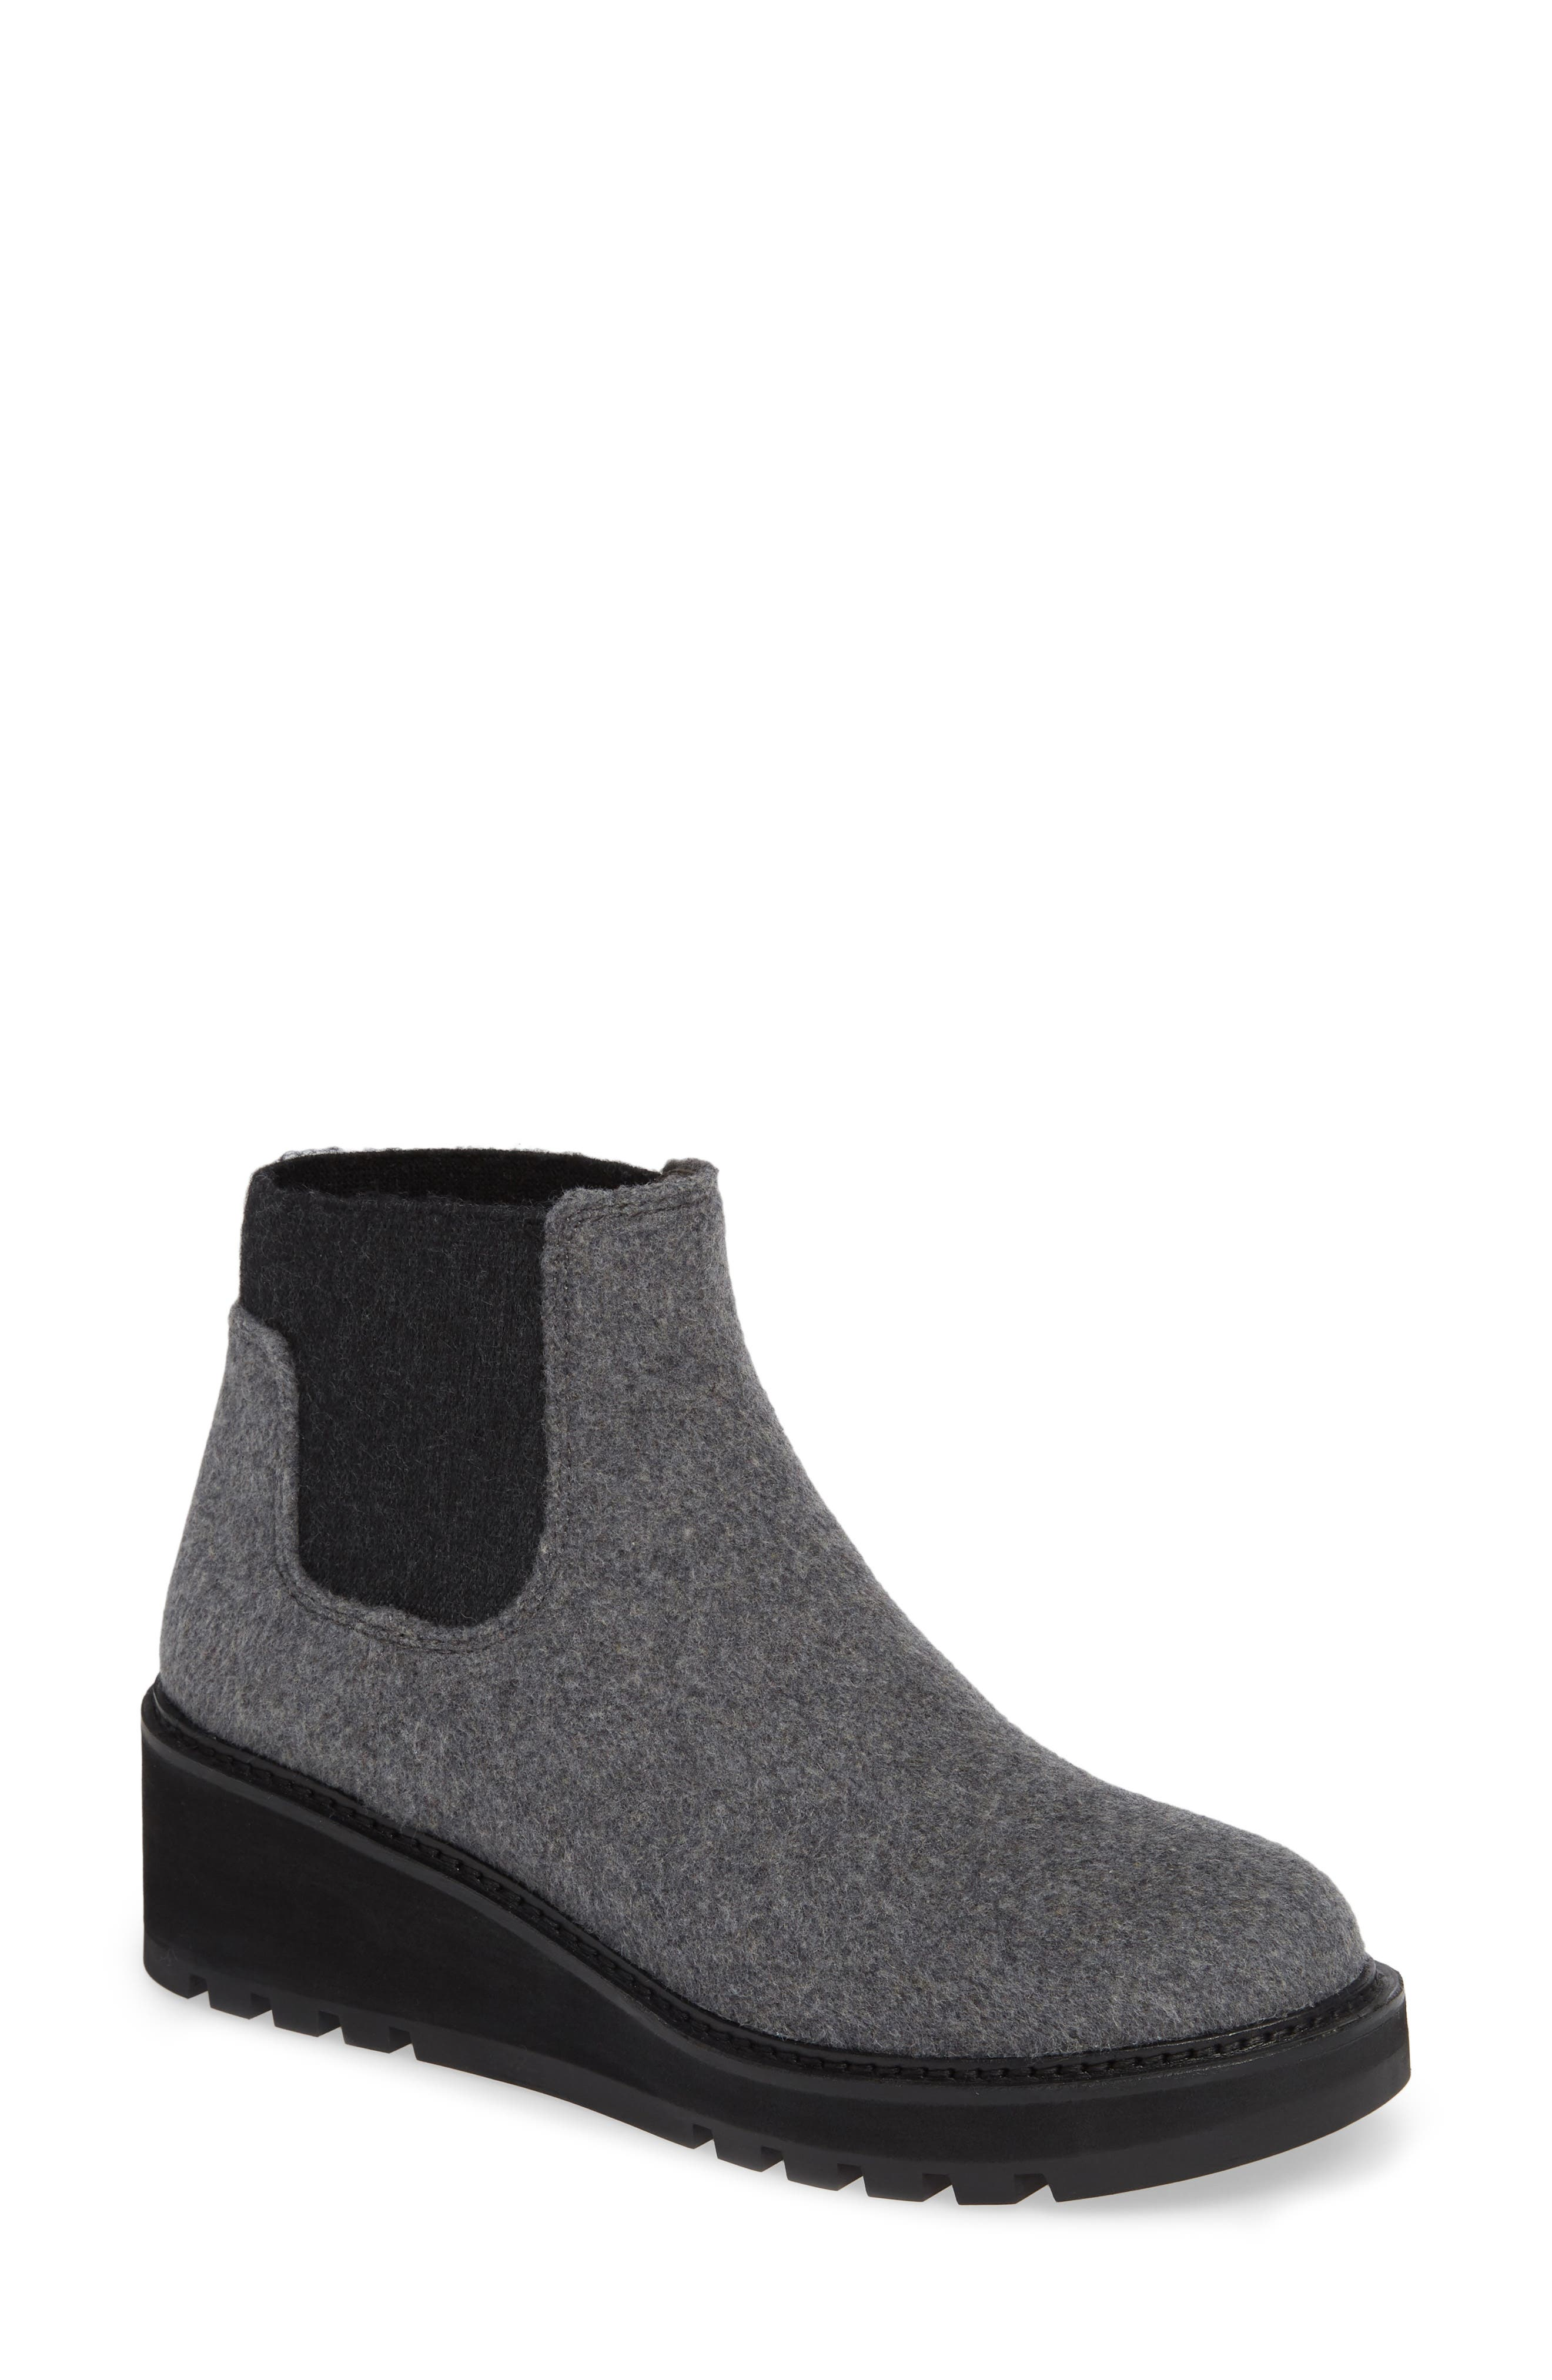 Wedge Chelsea Bootie,                         Main,                         color, CHARCOAL FABRIC